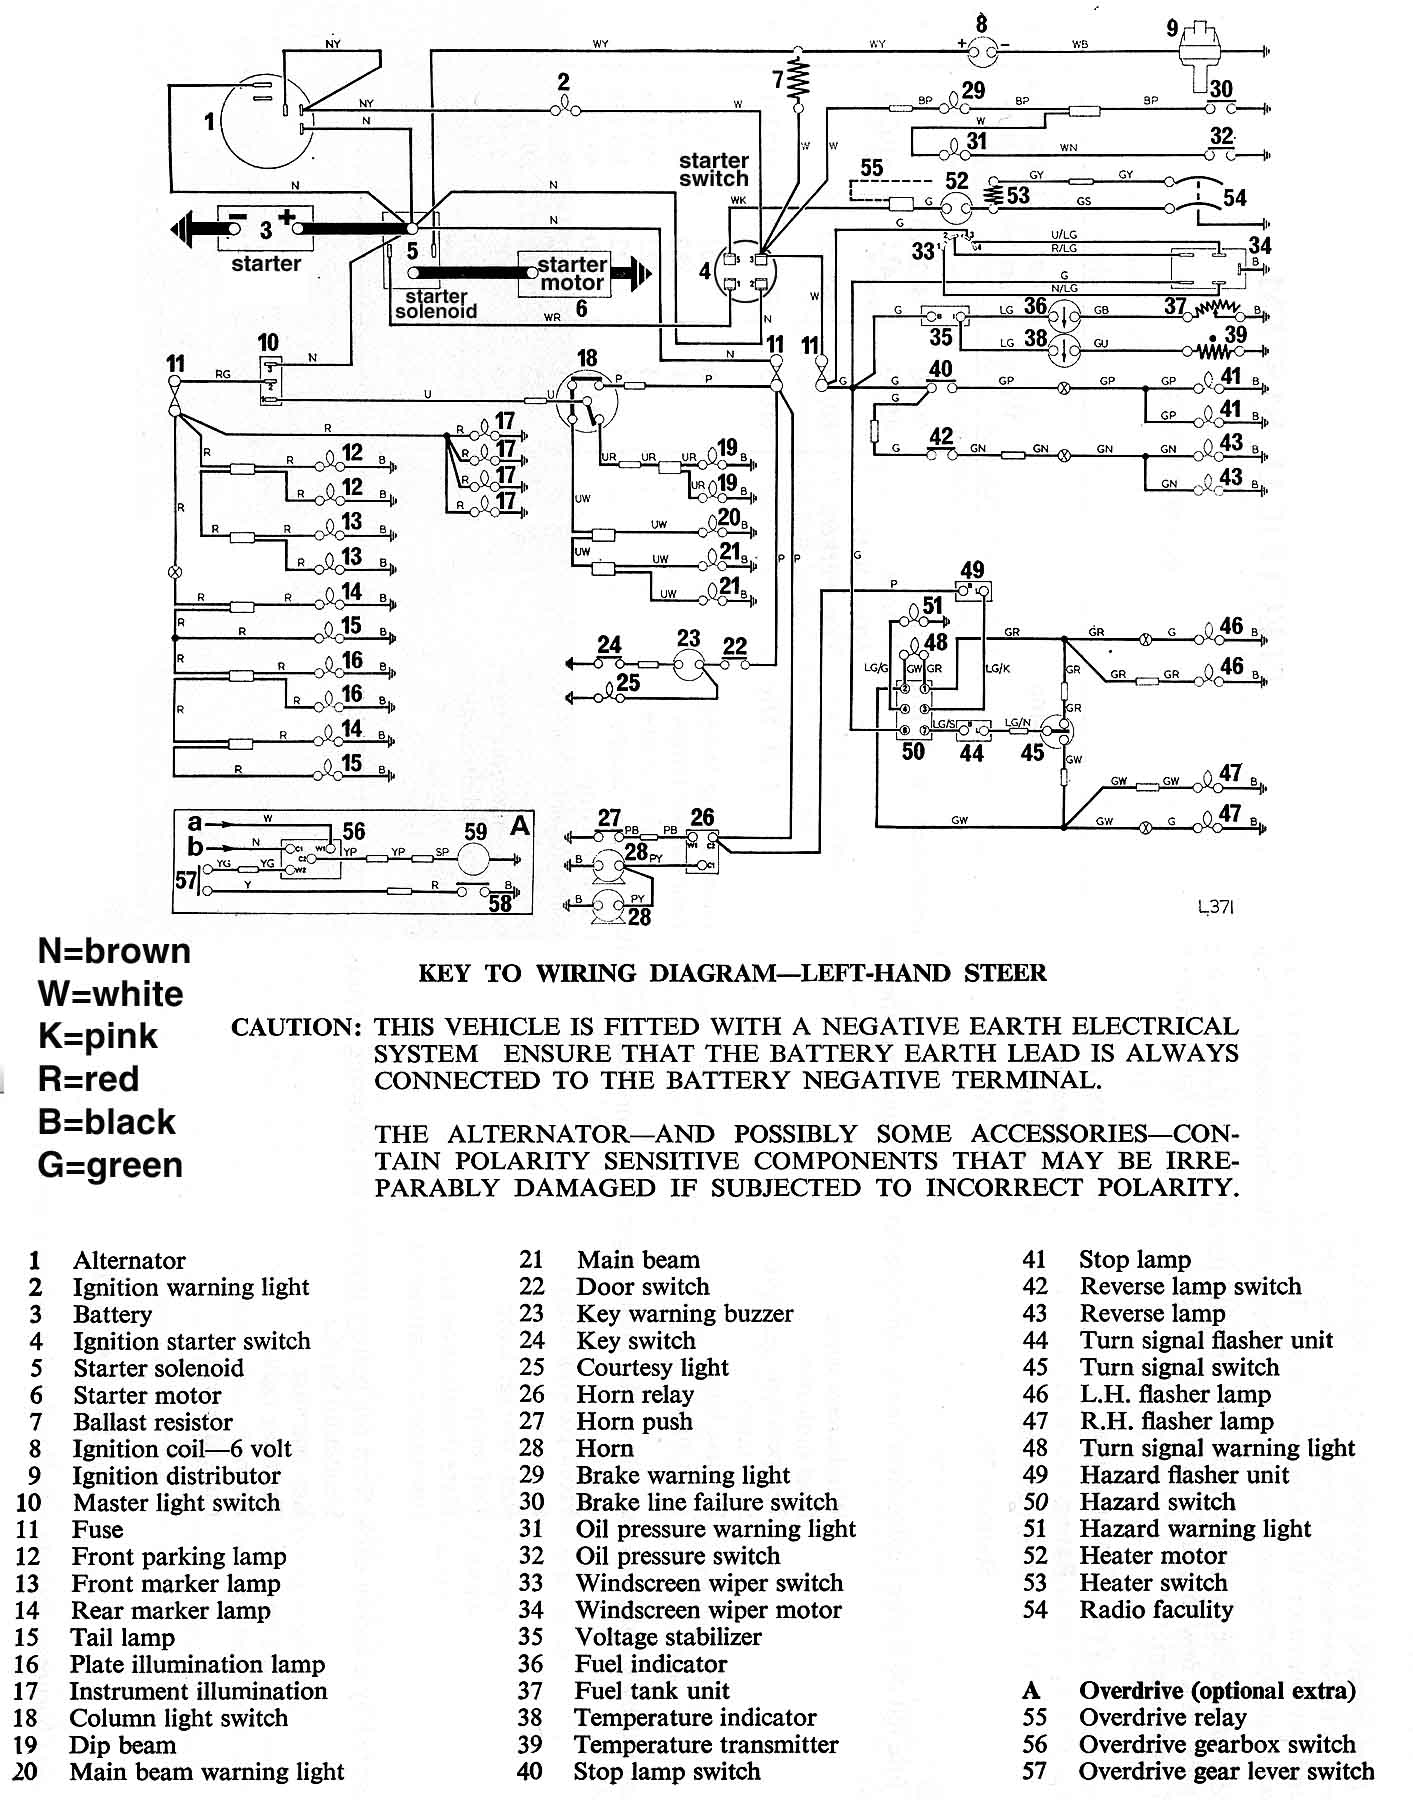 MKIVwire wiring schematics and diagrams triumph spitfire, gt6, herald Painless Wiring Harness Diagram at bakdesigns.co